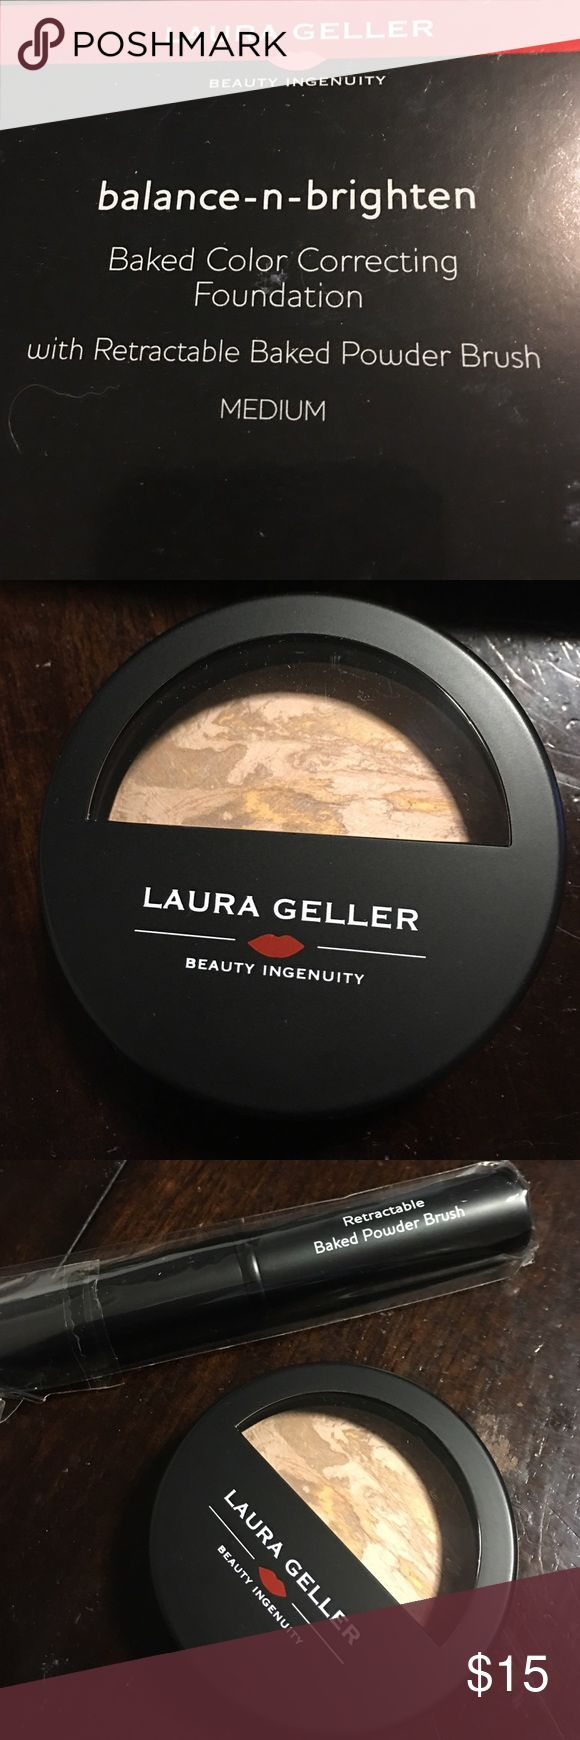 Laura Geller foundation Laura Geller baked color correcting foundation with retractable brush Makeup Foundation